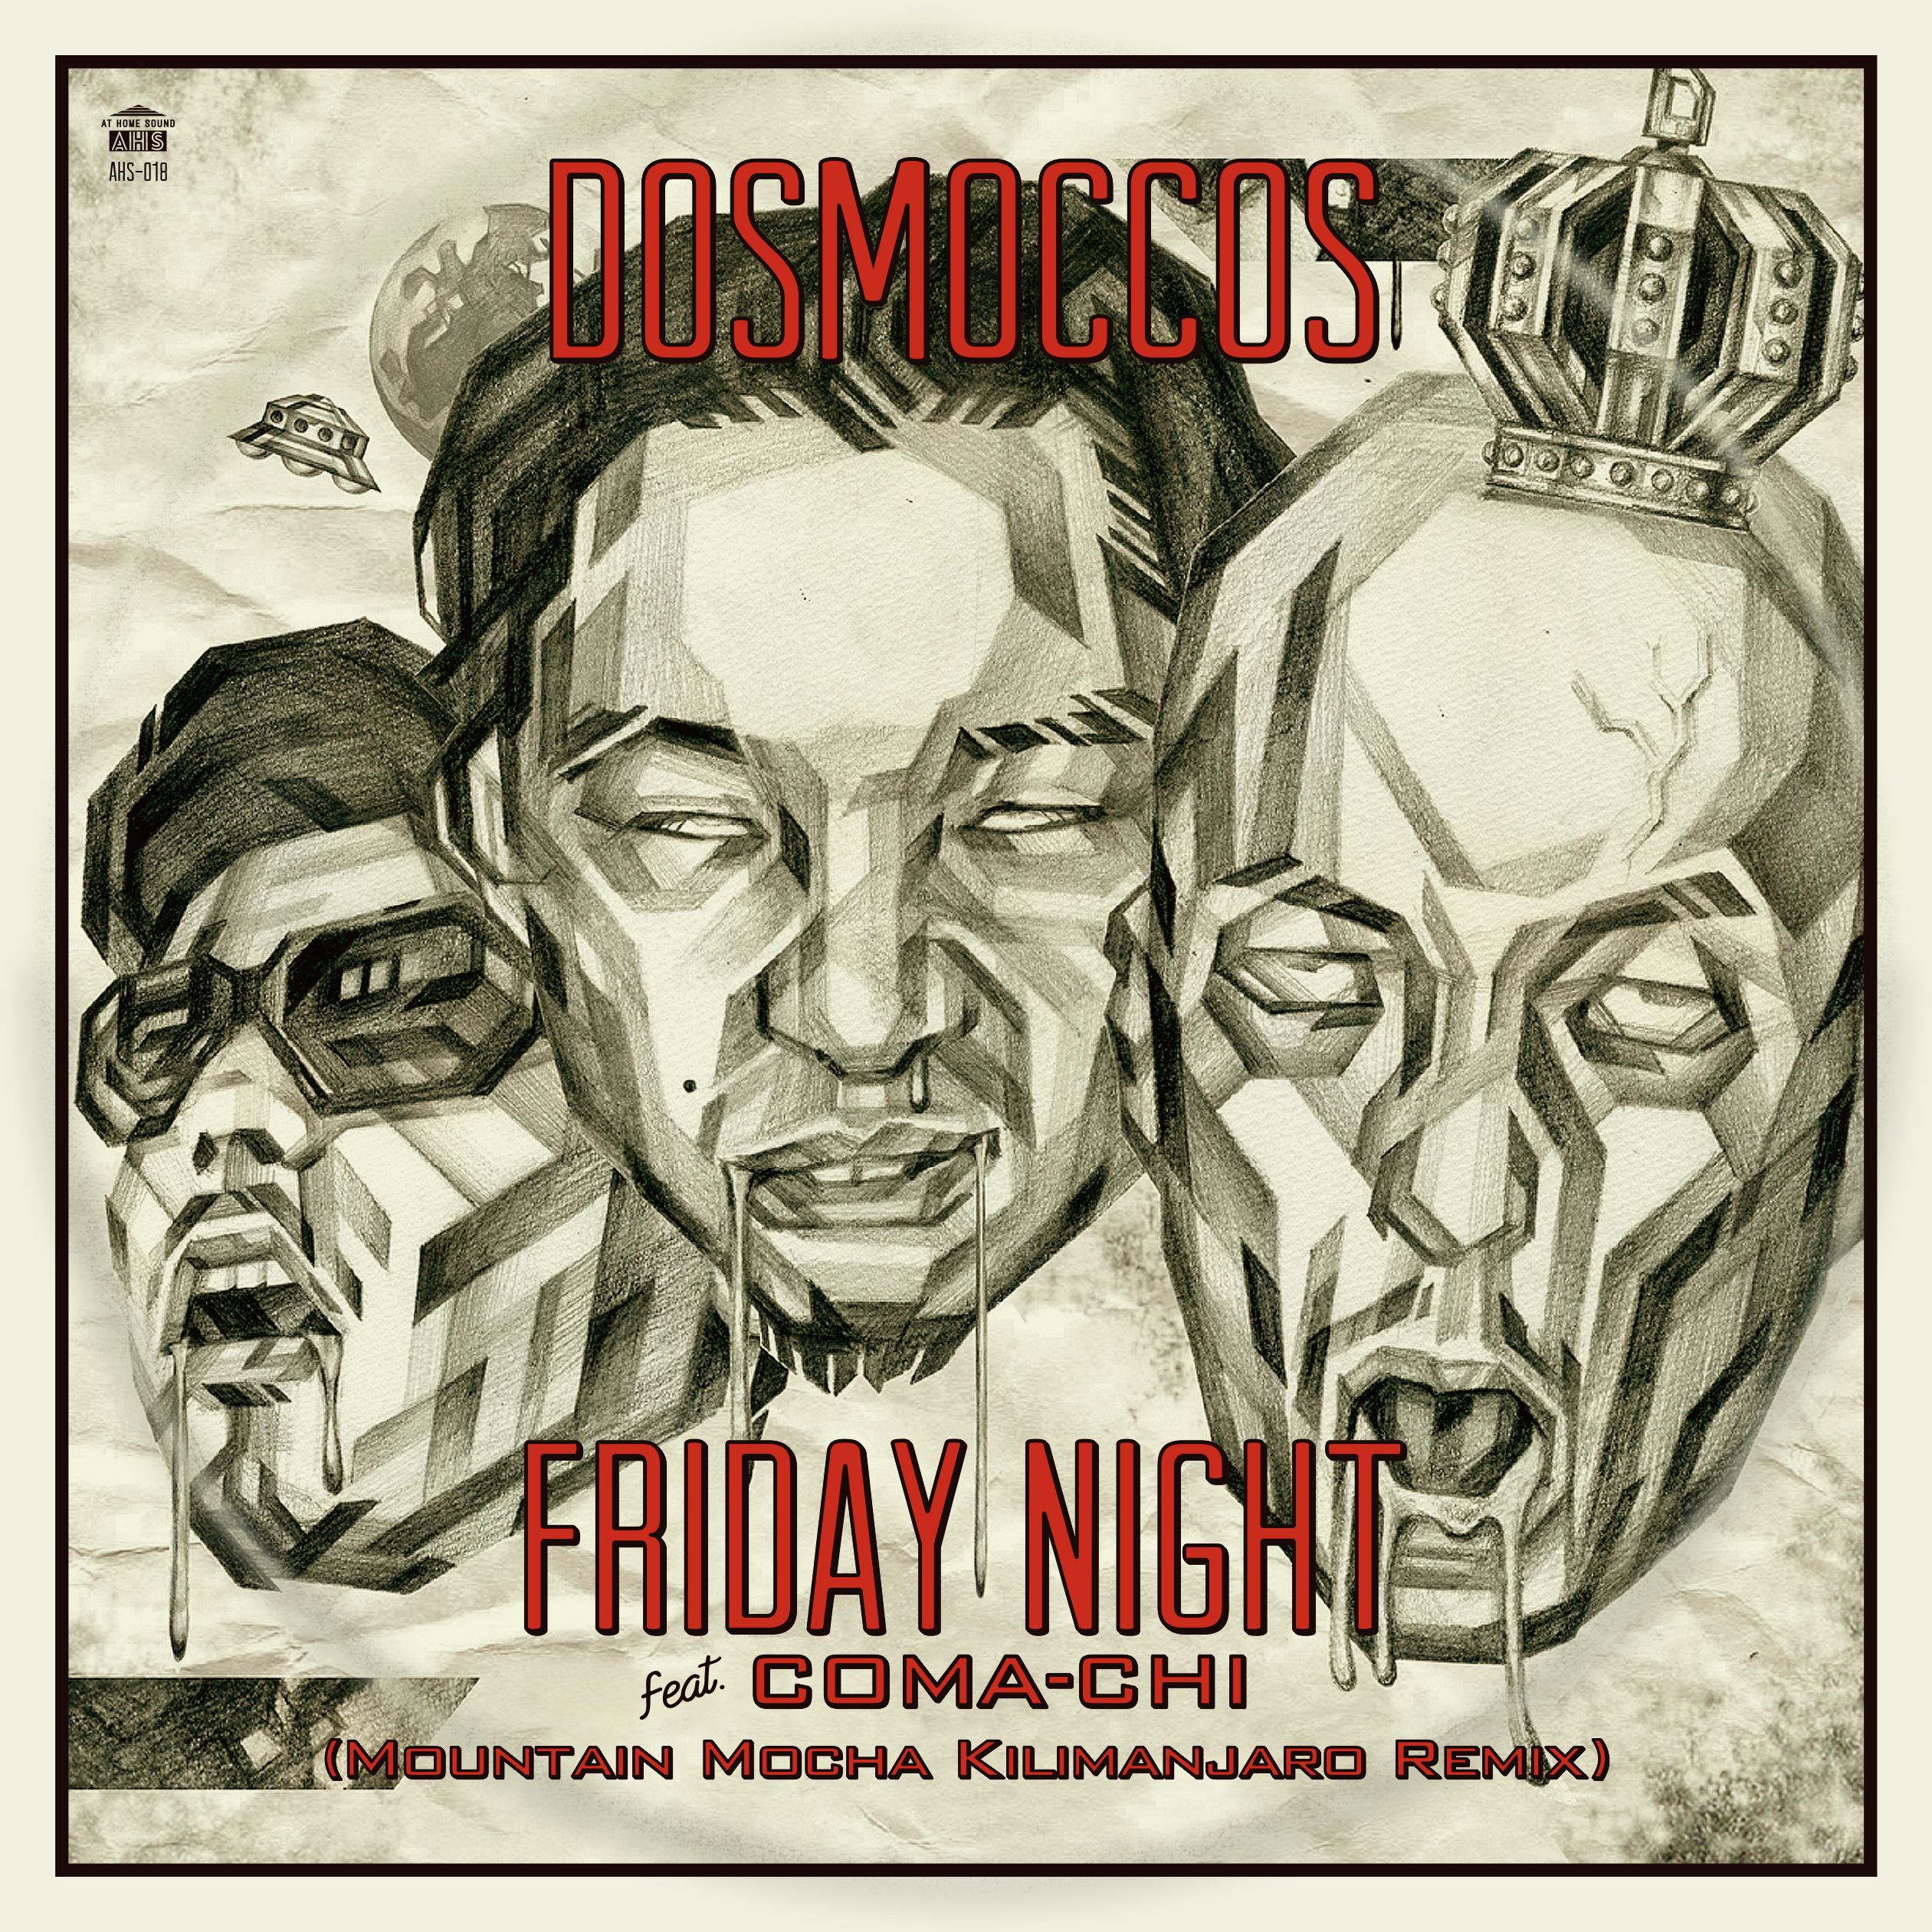 DOSMOCCOS / FRIDAY NIGHT FEAT. COMA-CHI